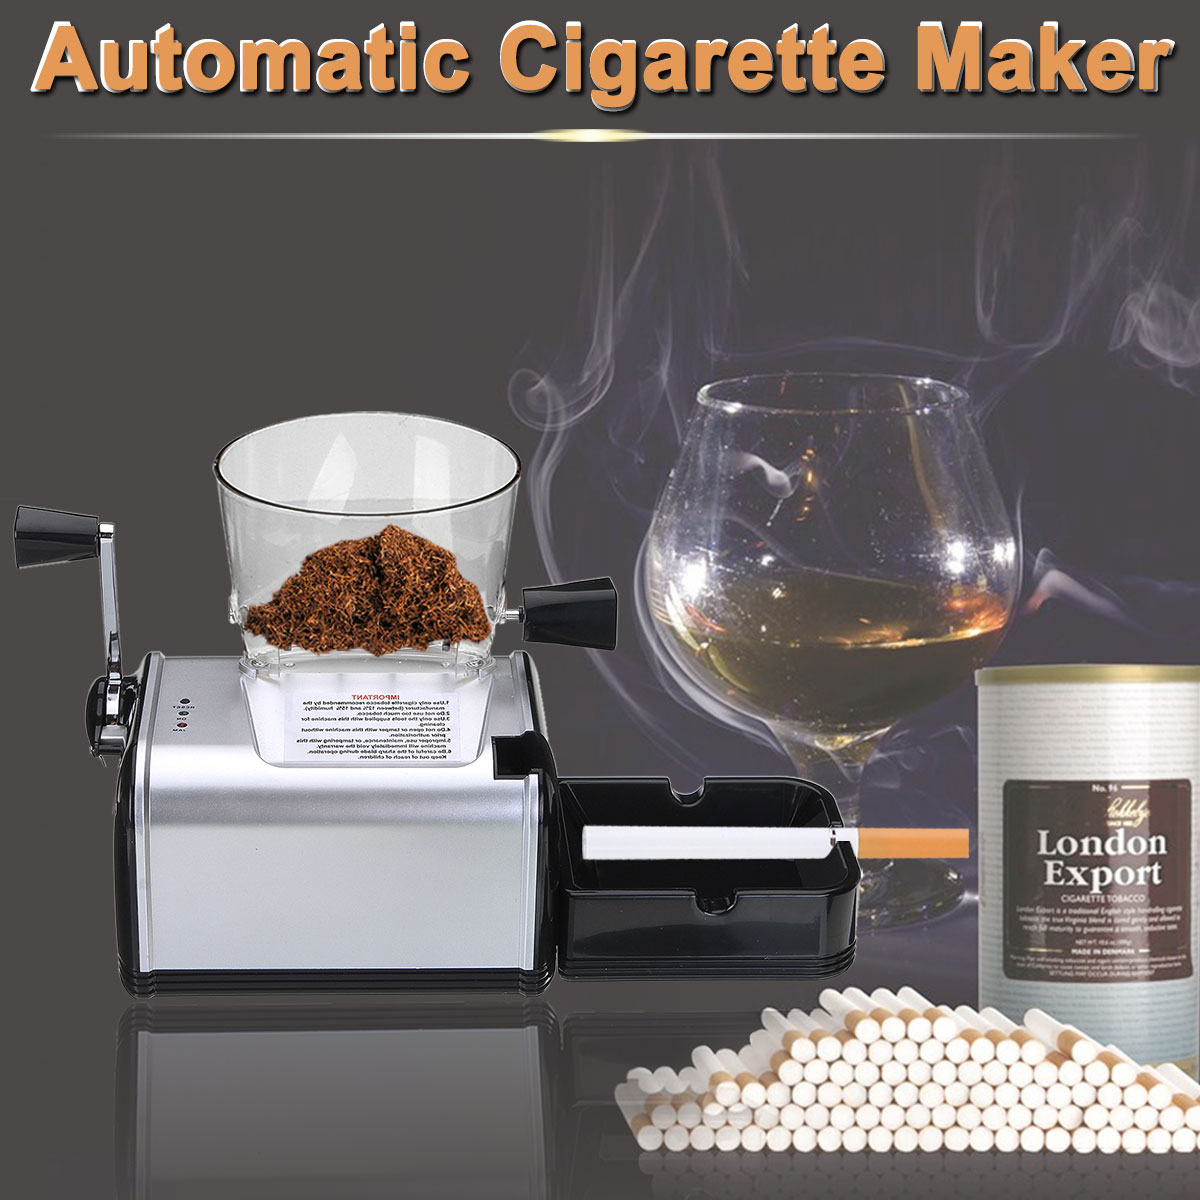 High Quality 220V Electric Automatic Making Rolling Cigarette Machine Tobacco Roller Maker Inject 8mm Tube Portable Smoking ToolHigh Quality 220V Electric Automatic Making Rolling Cigarette Machine Tobacco Roller Maker Inject 8mm Tube Portable Smoking Tool